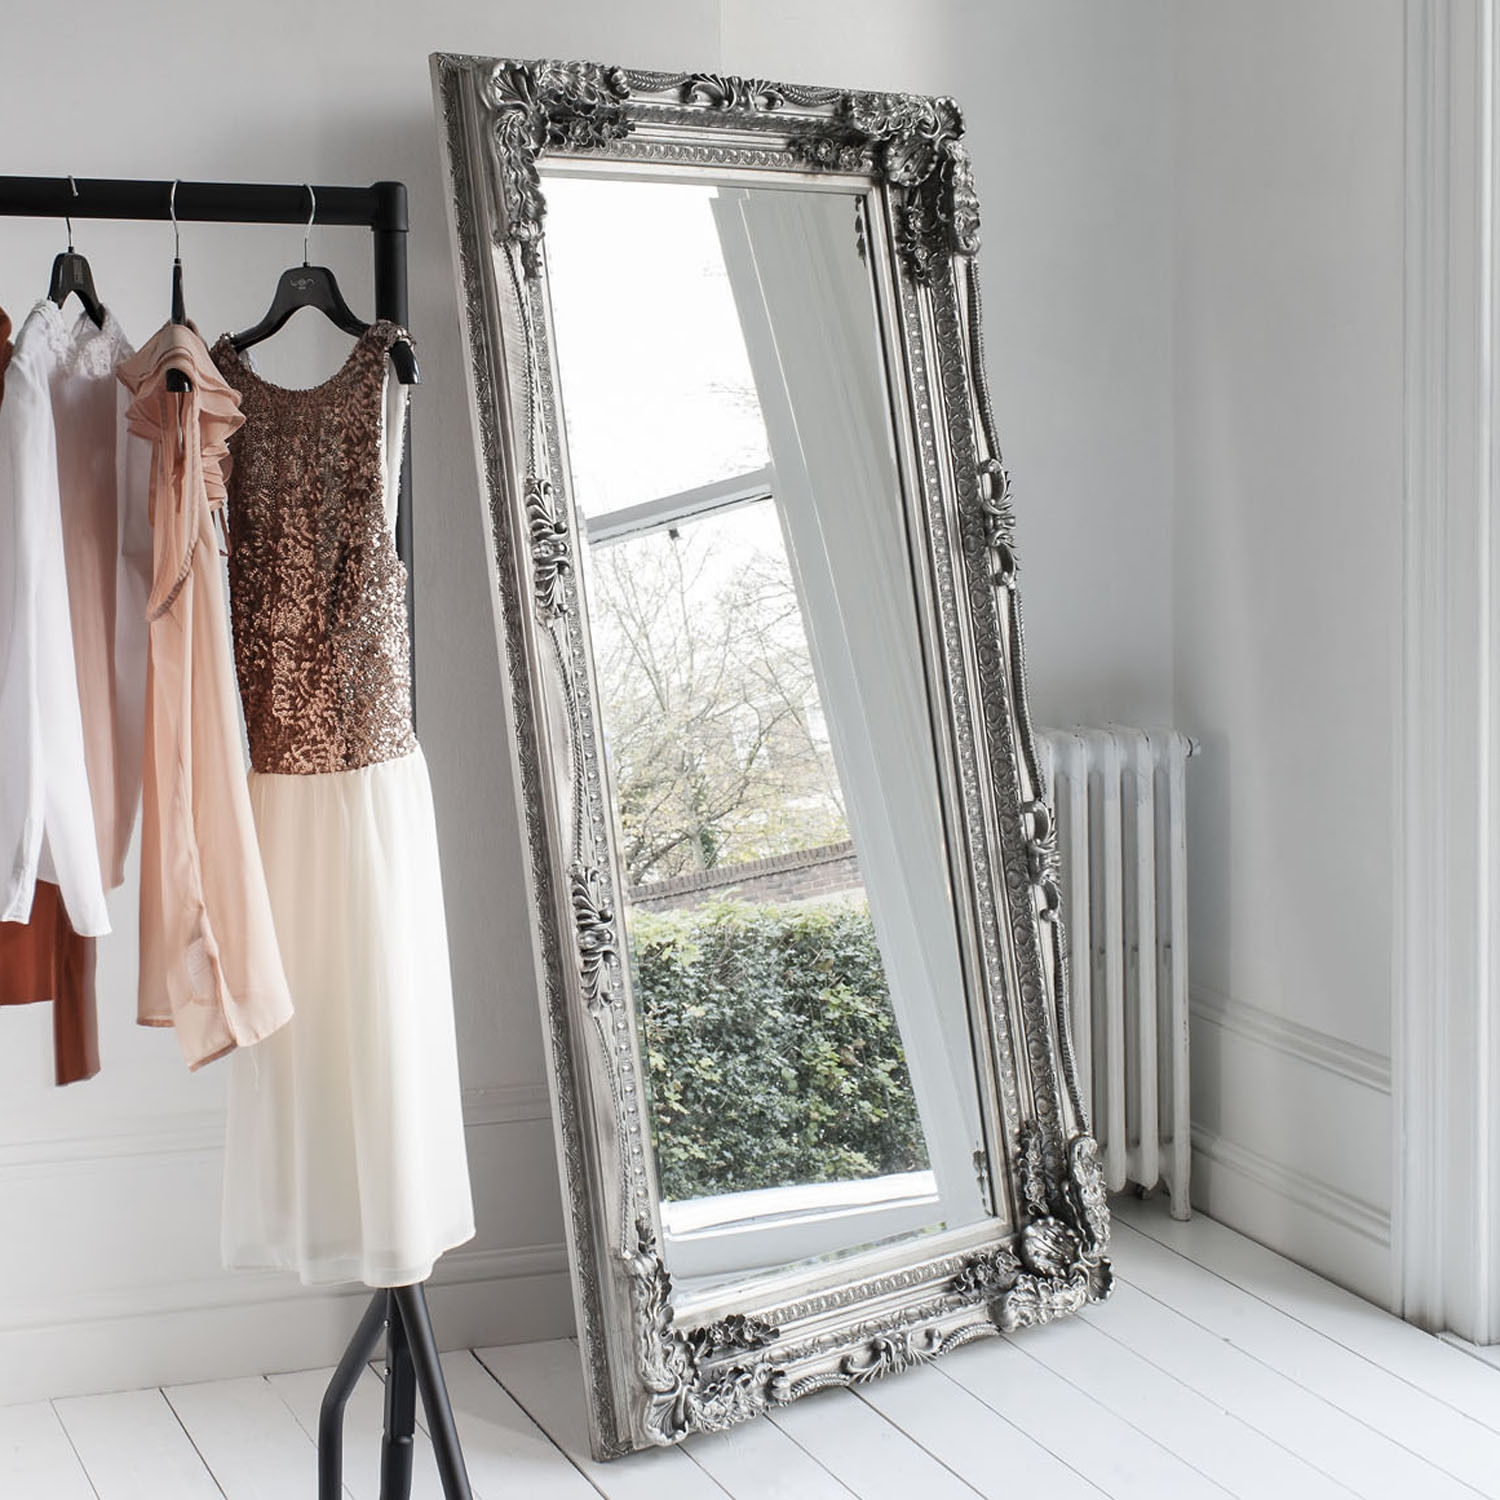 I Want A Large Floor Mirror In The Formal Living Roomstudio Within French Floor Mirrors (Image 12 of 15)